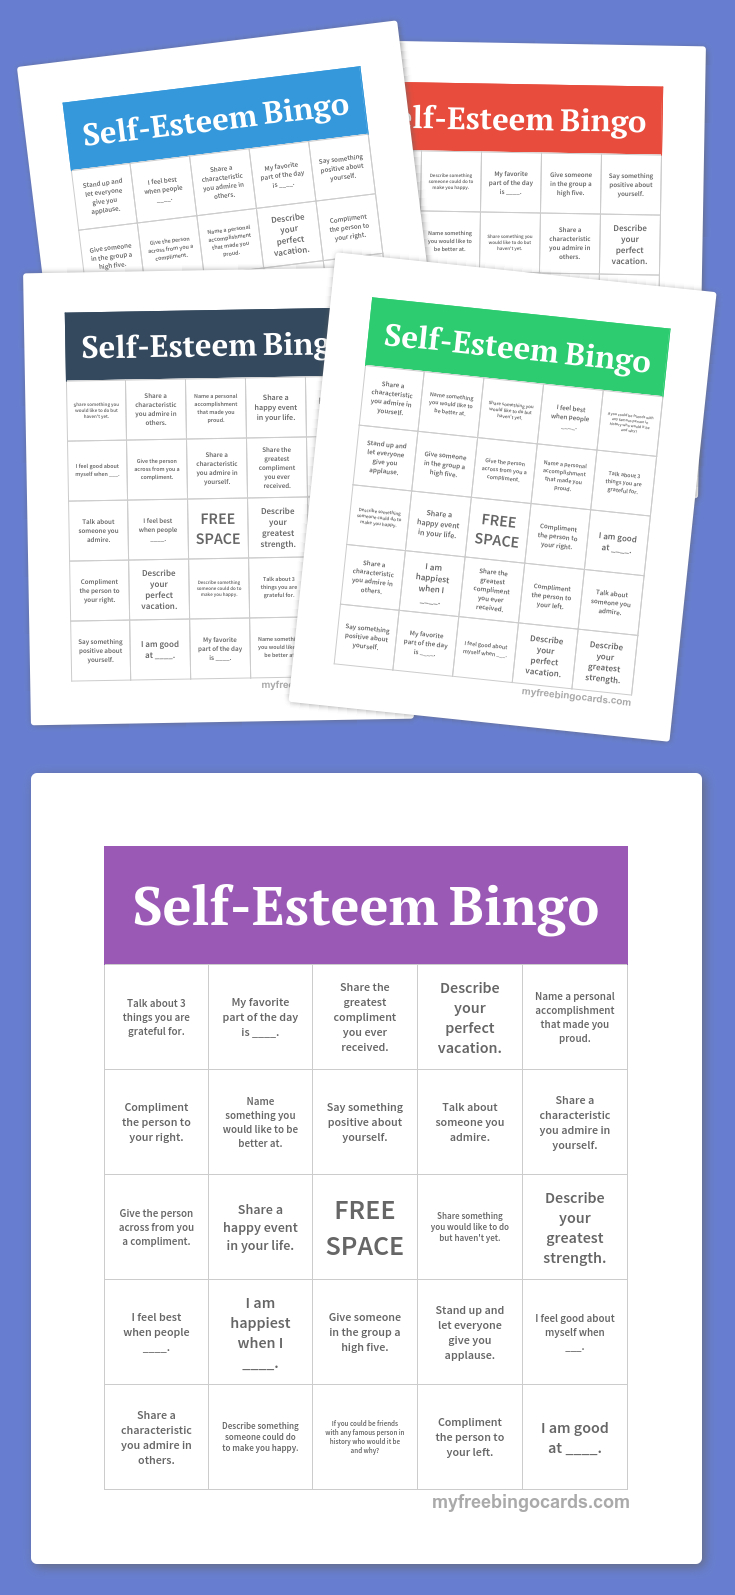 Self-Esteem Bingo | Group Ideas | Free Bingo Cards, Free Printable - Free Printable Self Esteem Bingo